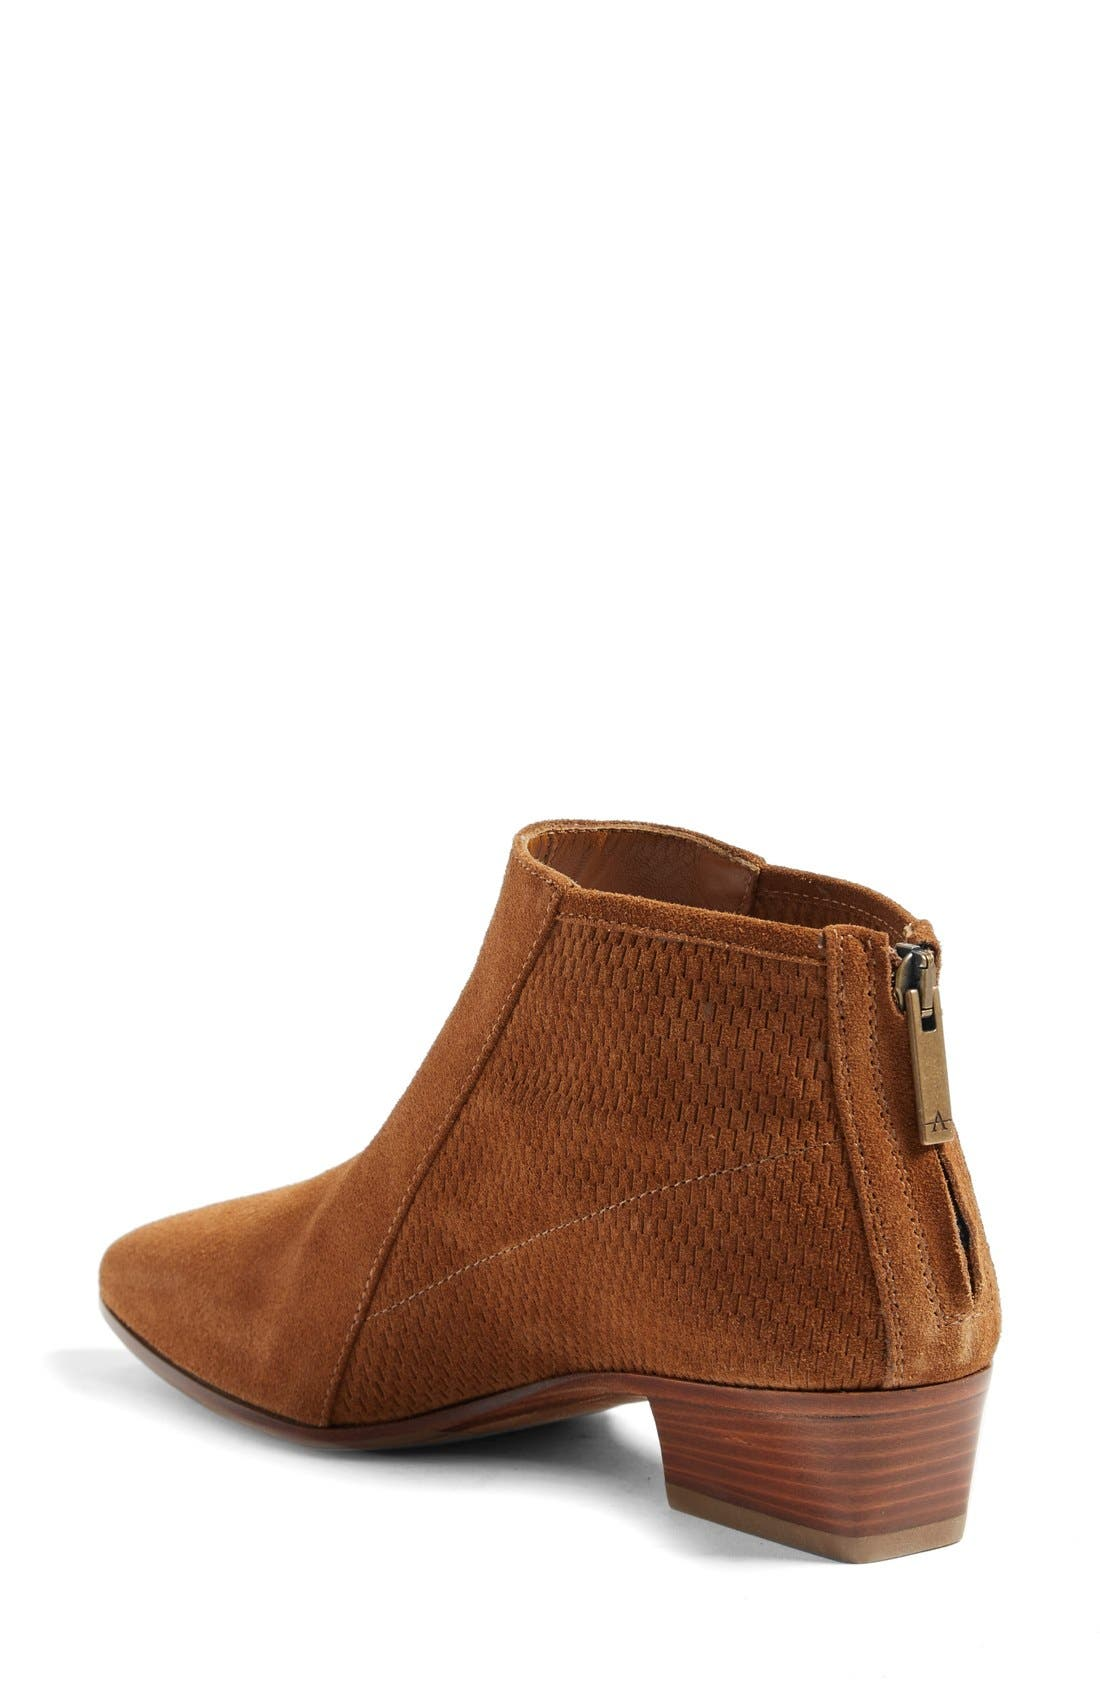 Fianna Perforated Bootie,                             Alternate thumbnail 8, color,